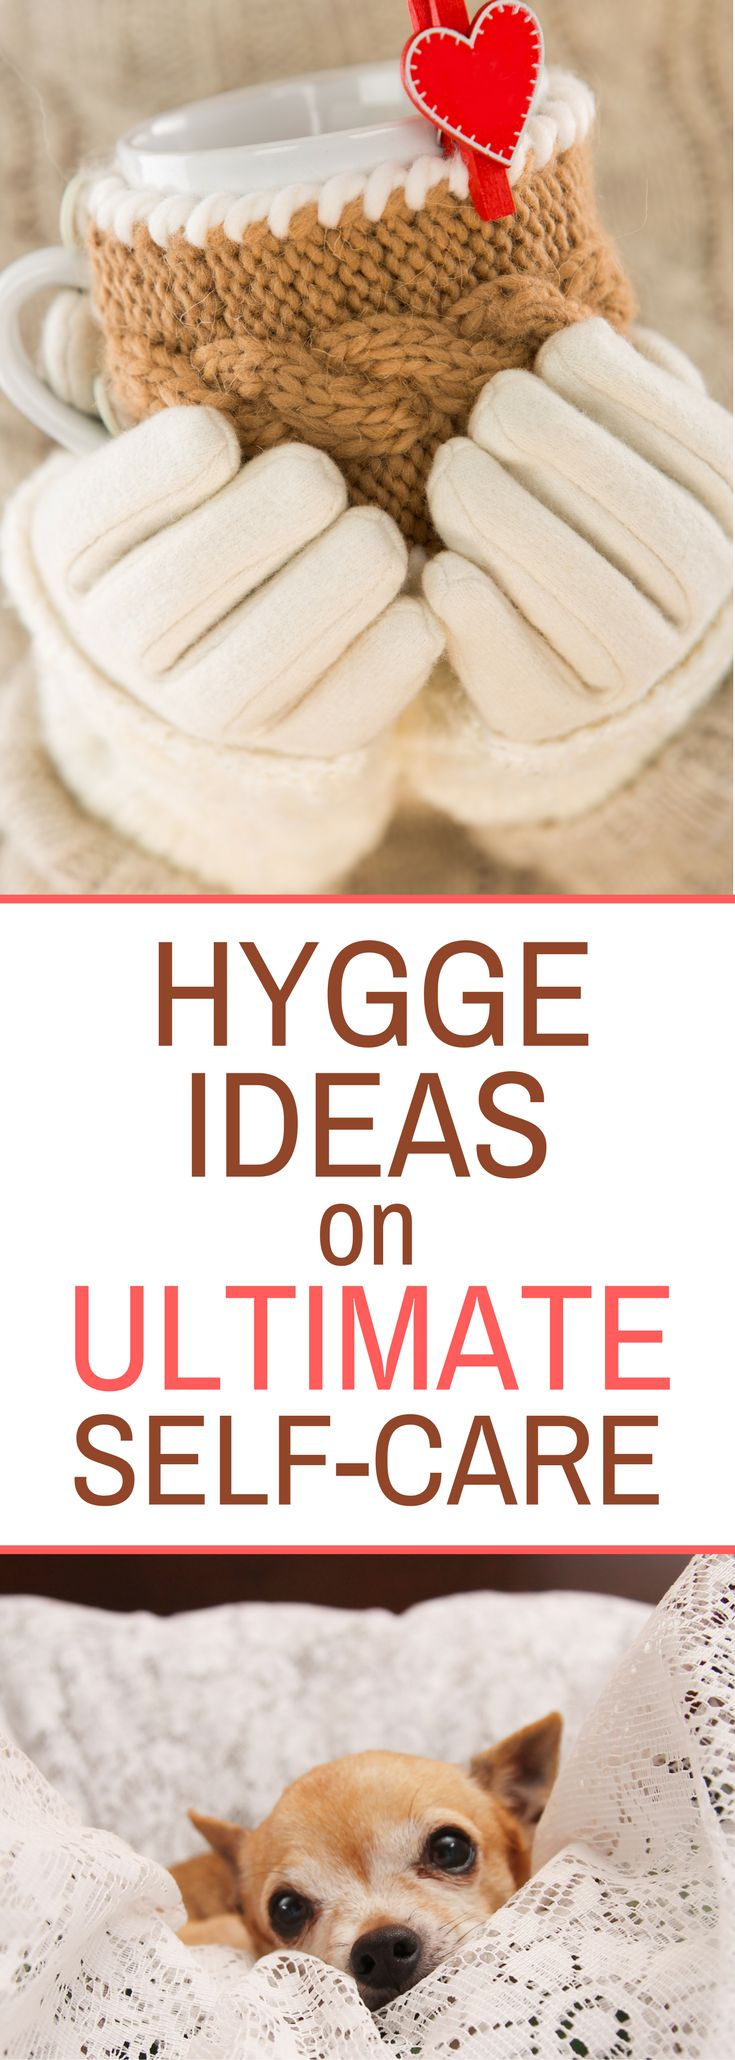 Hygge Ideas on Ultimate Self-Care - tips on taking care of yourself and rejuvenating your soul...